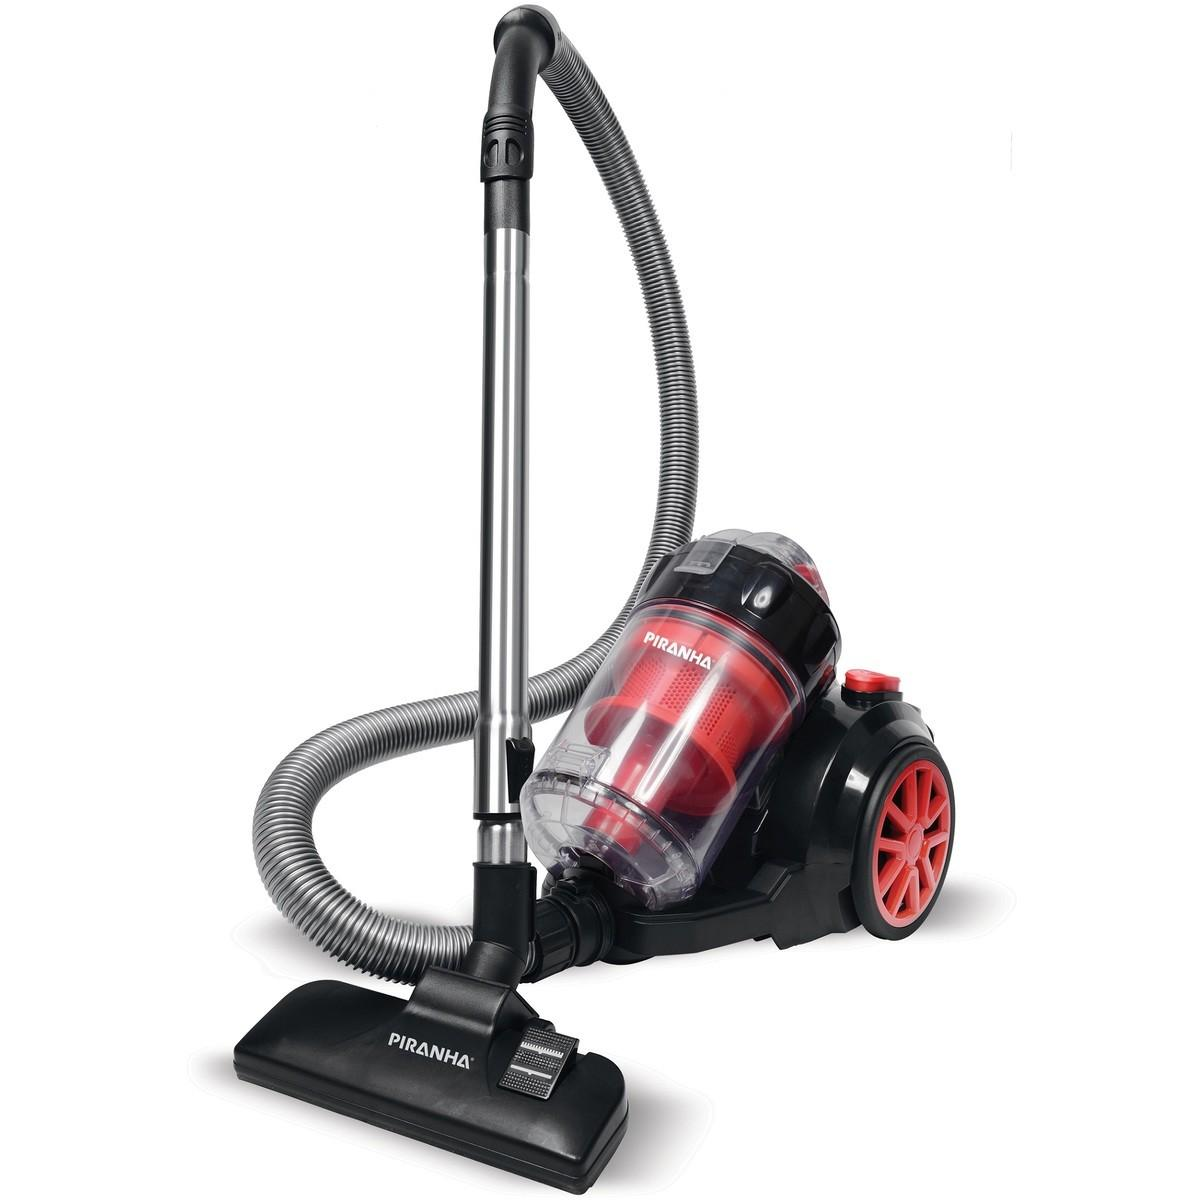 Piranha Glow 2000W Vacuum Cleaner – Red